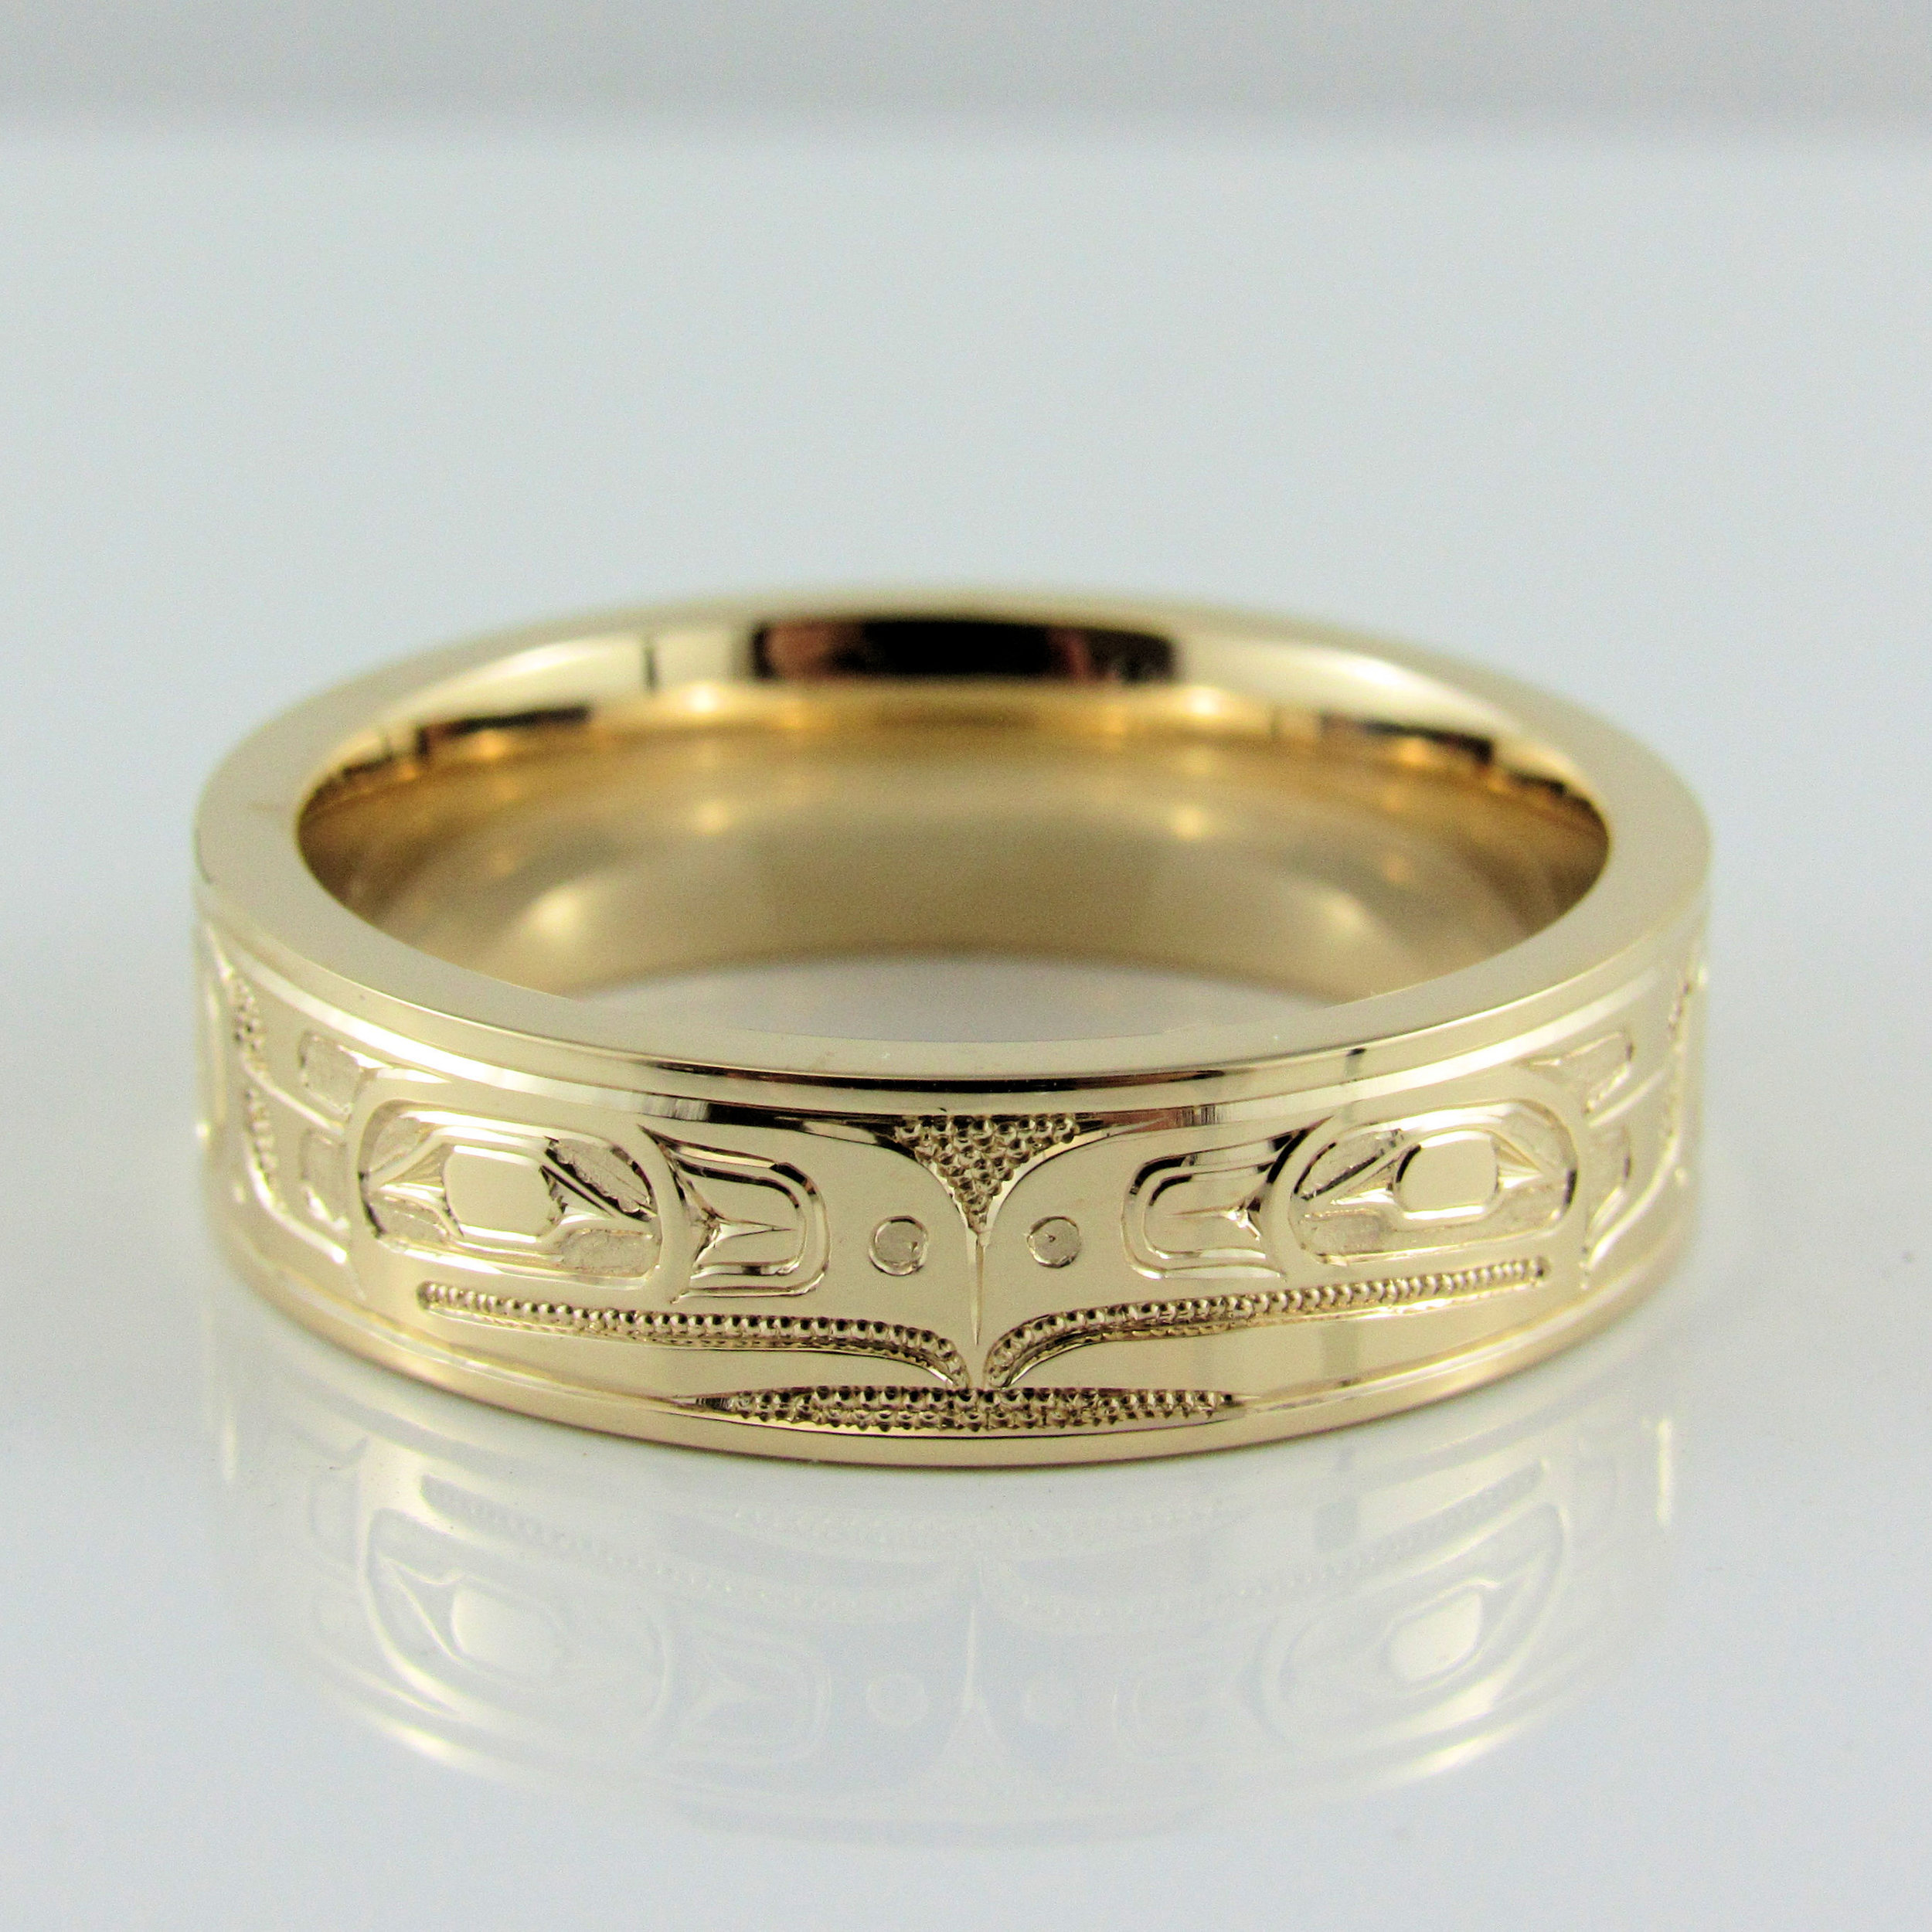 Eagles Band - This incredible band is hand engraved with Haida eagles. Simple and timeless. A ring all men love.#Haida #Eagle